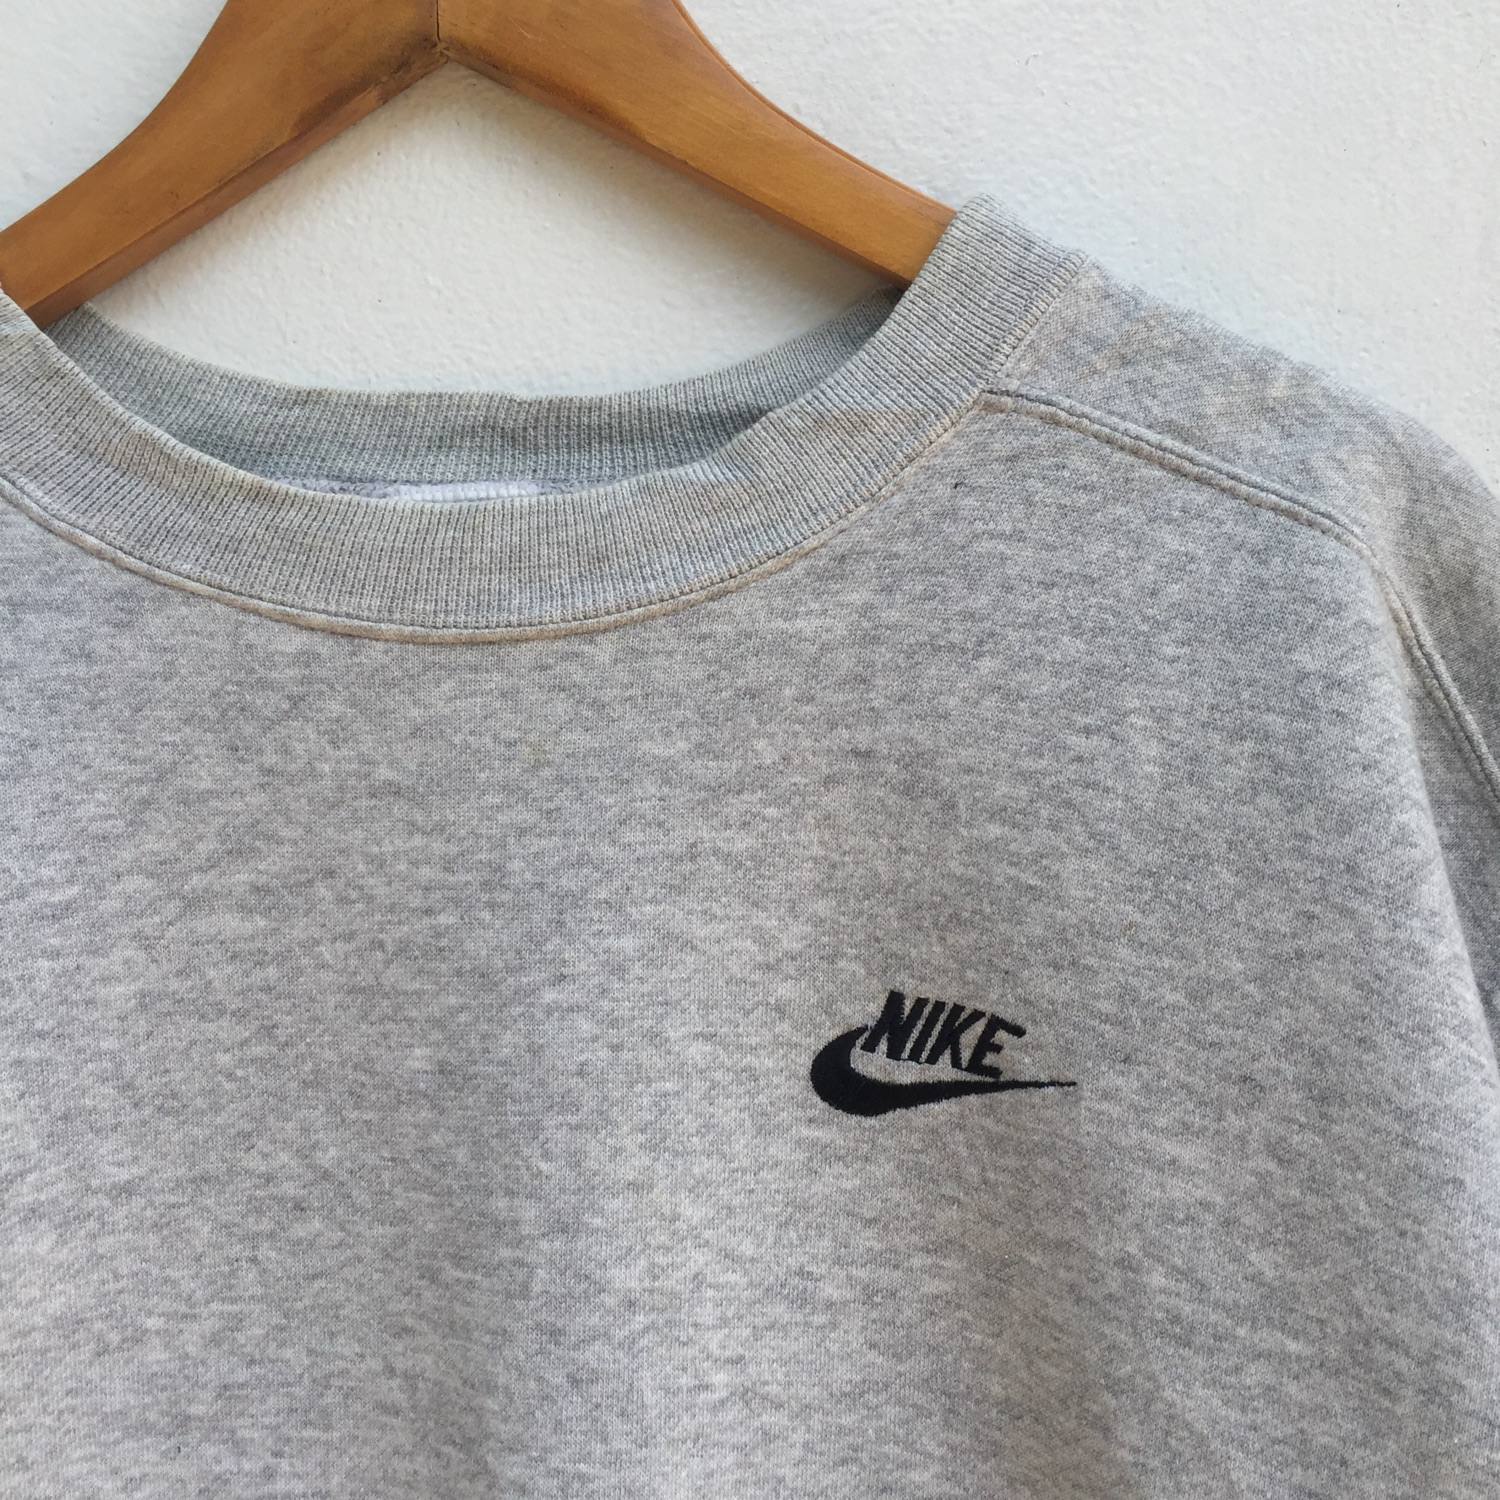 Vintage Nike Sweatshirt Embroidery Small Logo